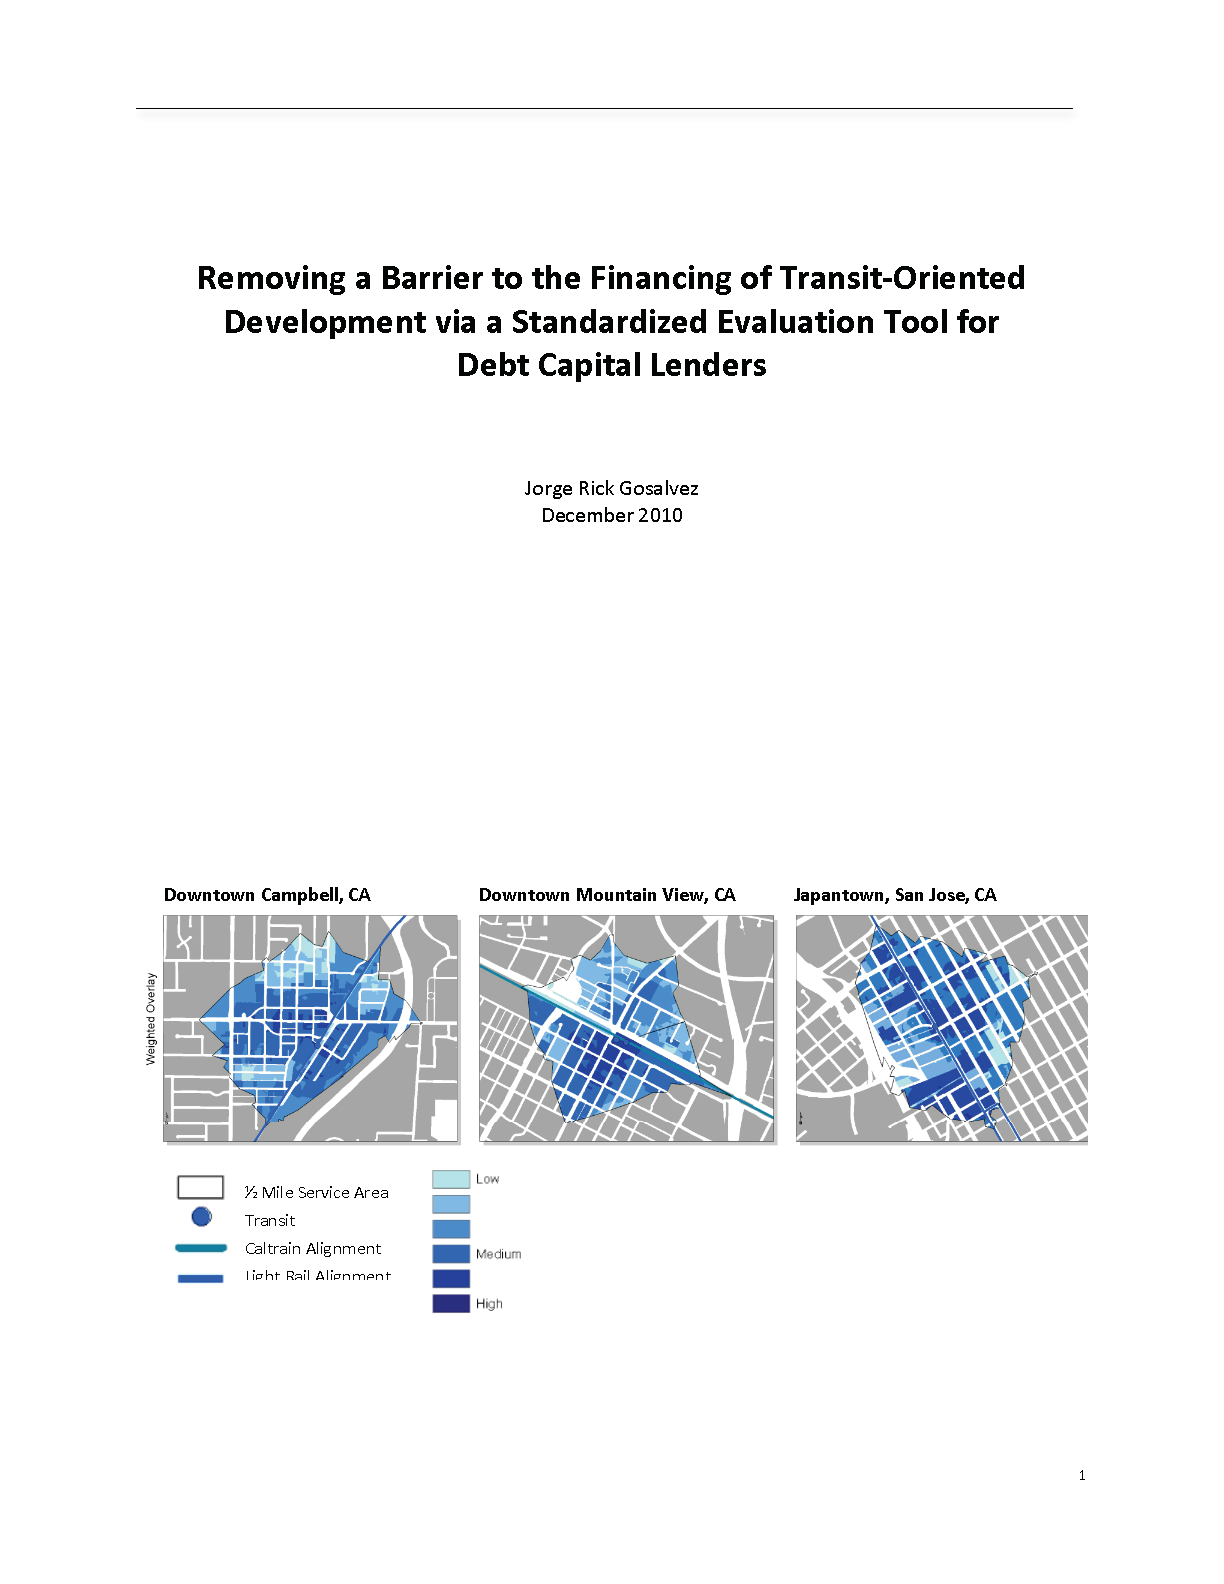 Removing a Barrier to the Financing of Transit-Oriented Development